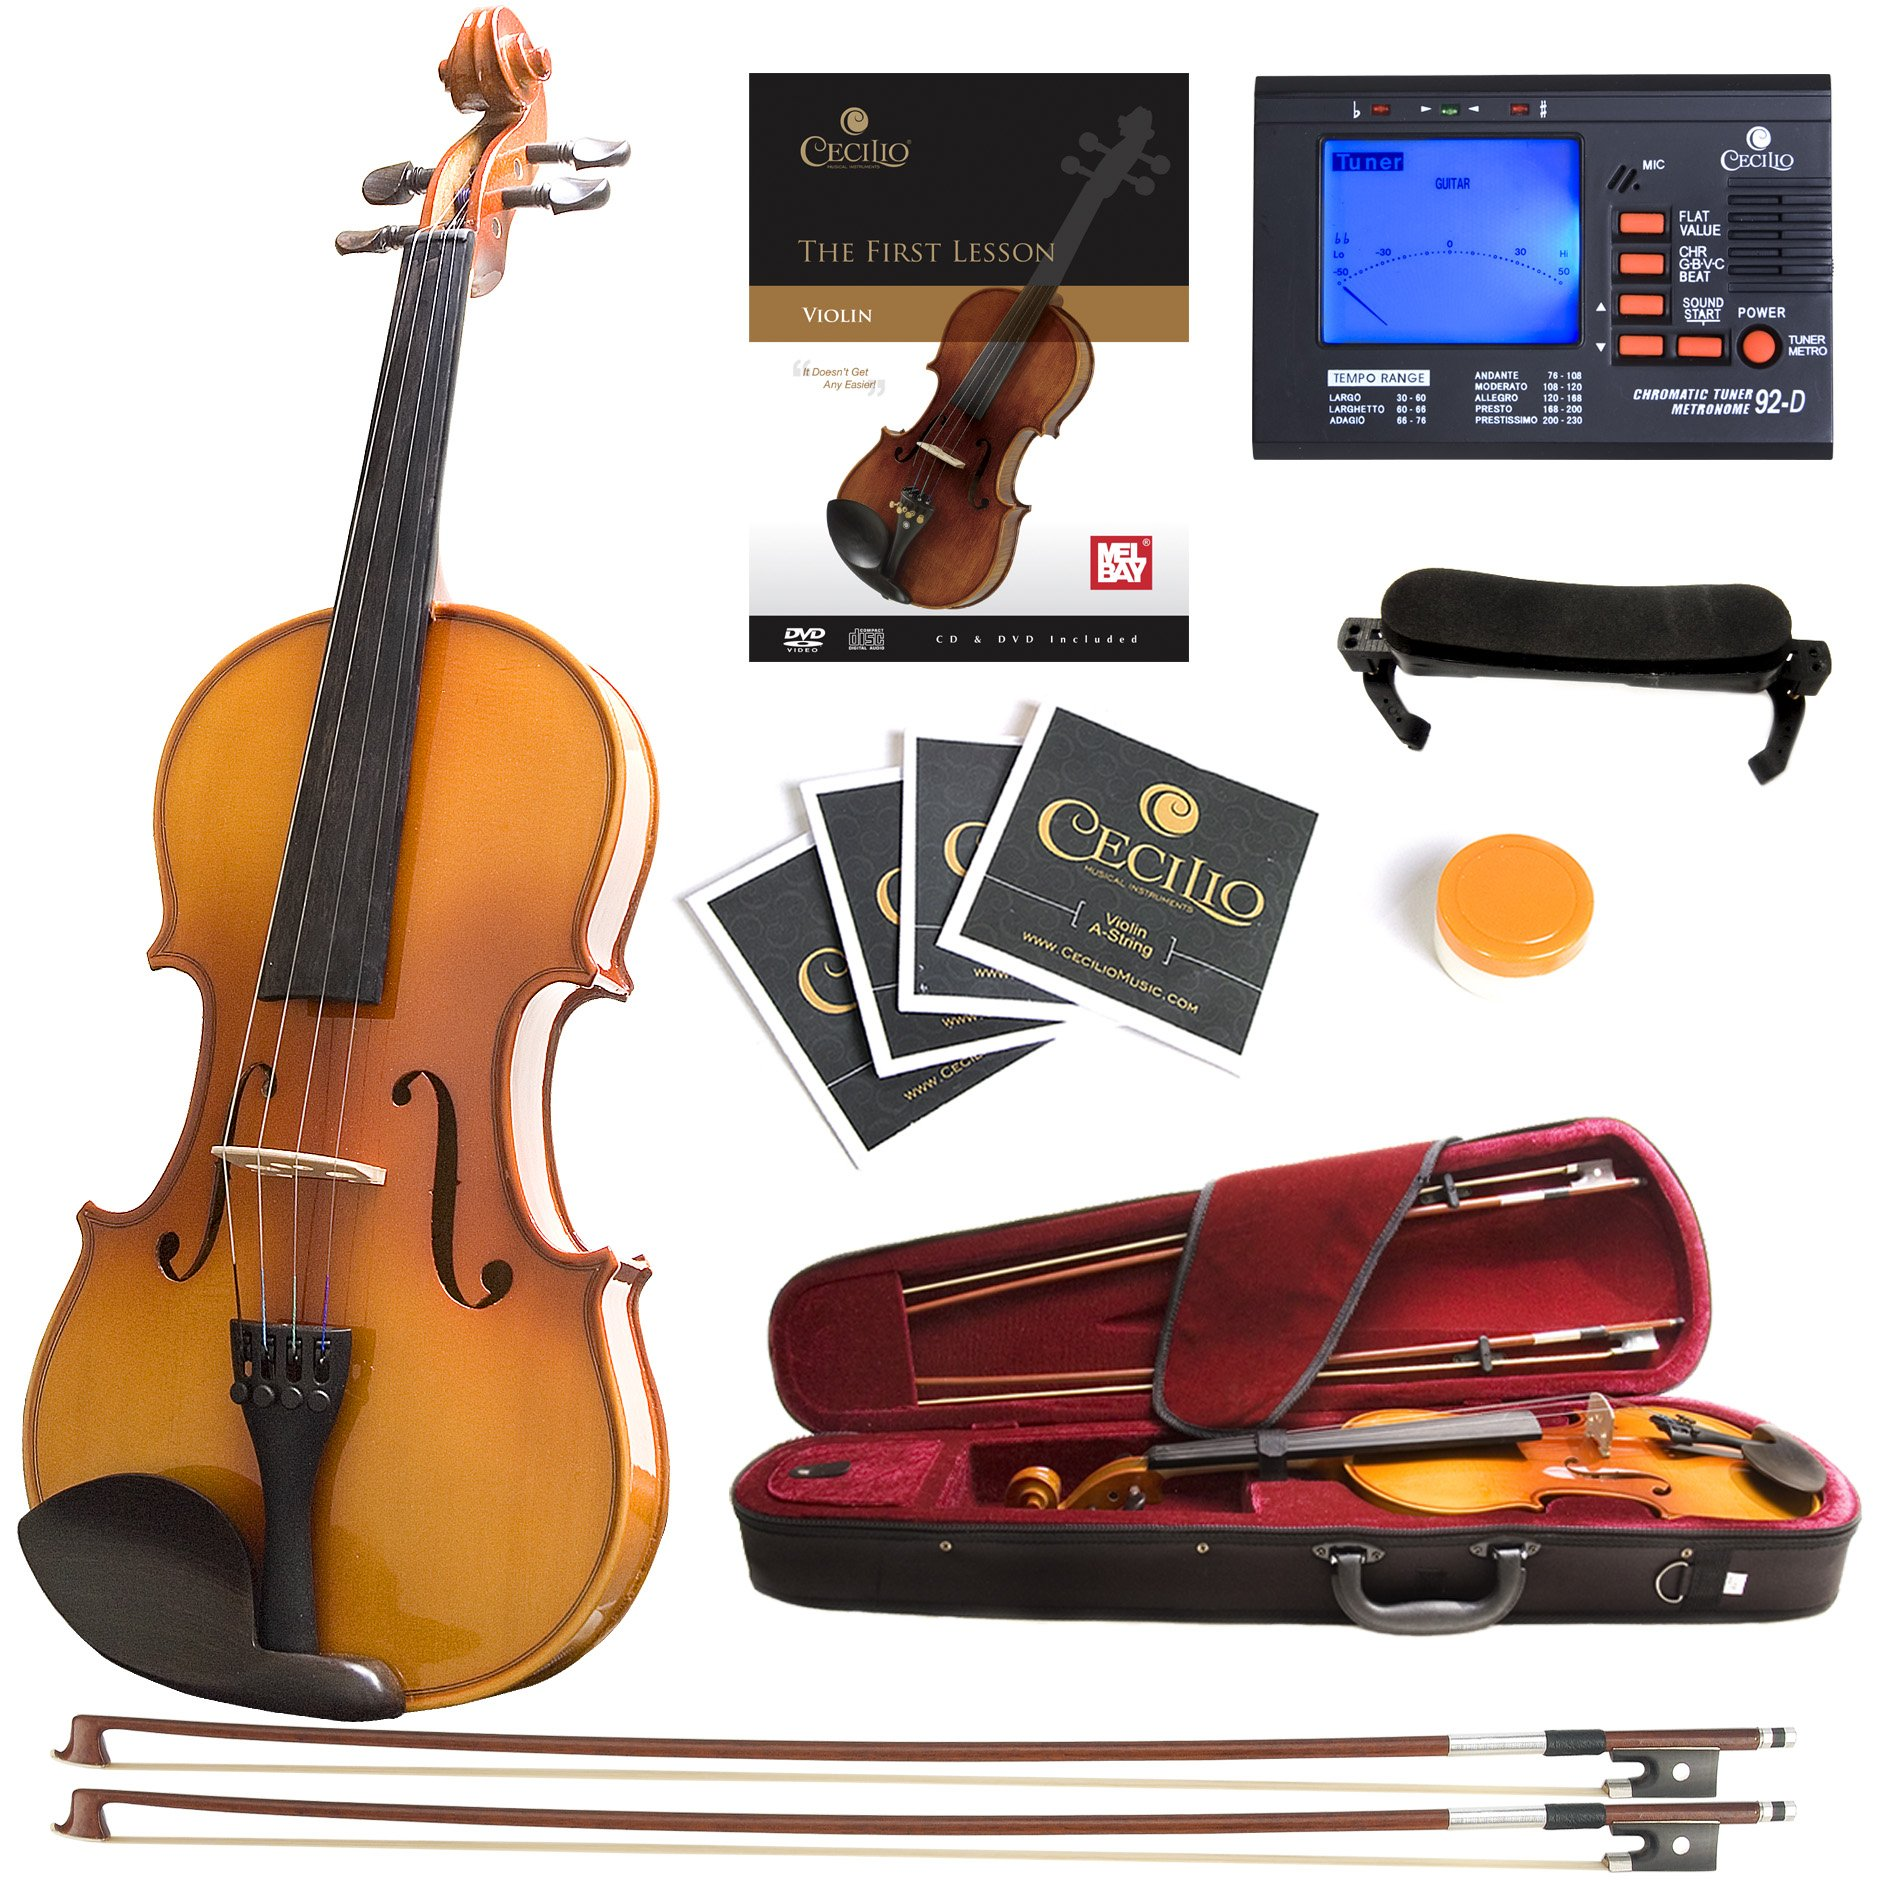 Mendini MV400 Ebony Fitted Solid Wood Violin with Tuner, Lesson Book, Hard Case, Shoulder Rest, Bow, Rosin, Extra Bridge and Strings - Size 4/4, (Full Size) by Mendini by Cecilio